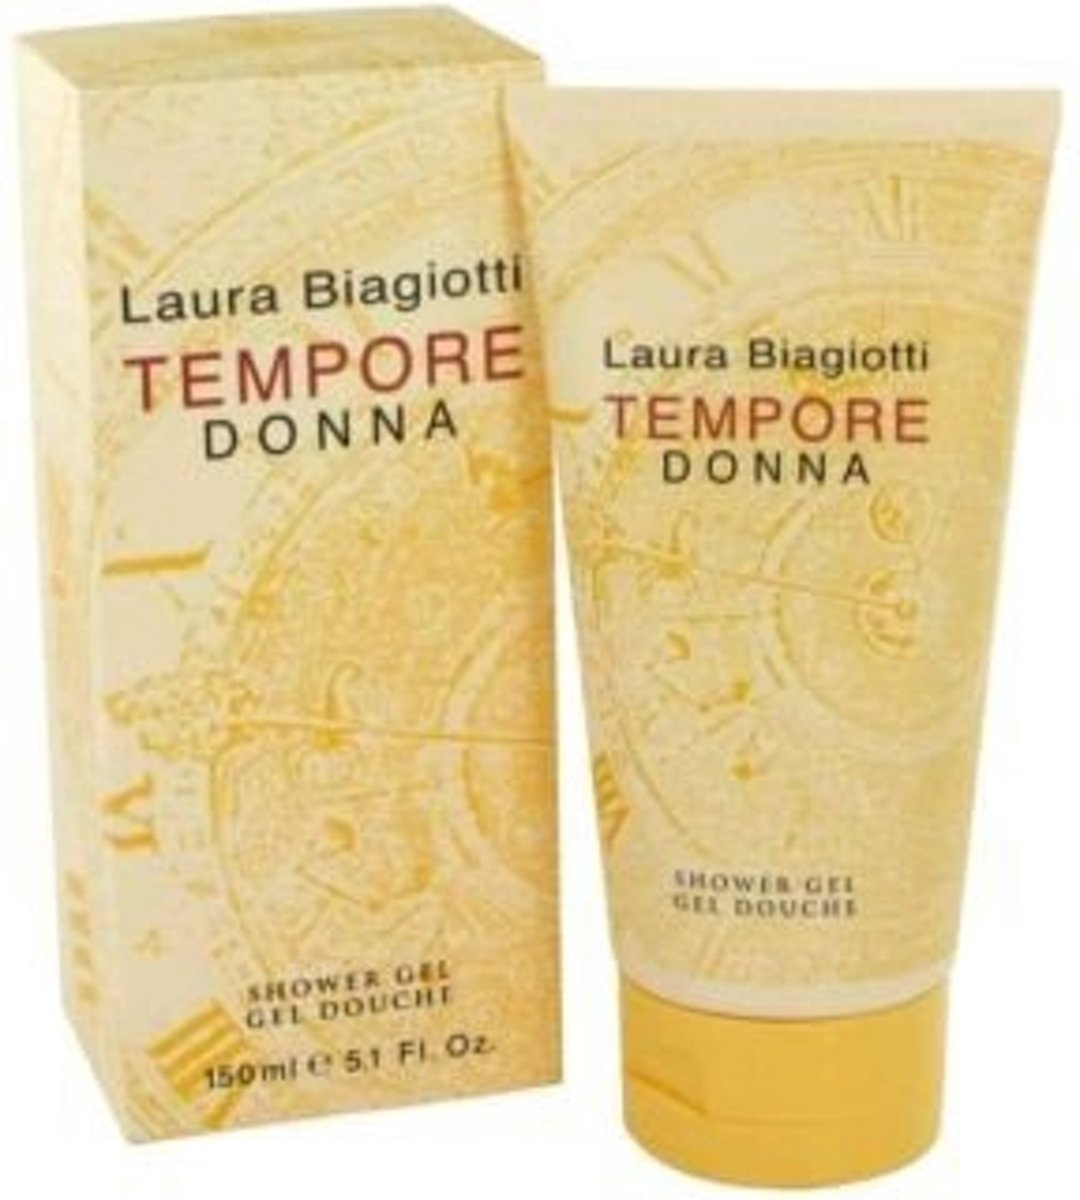 Biagiotti Bad en douche parfums